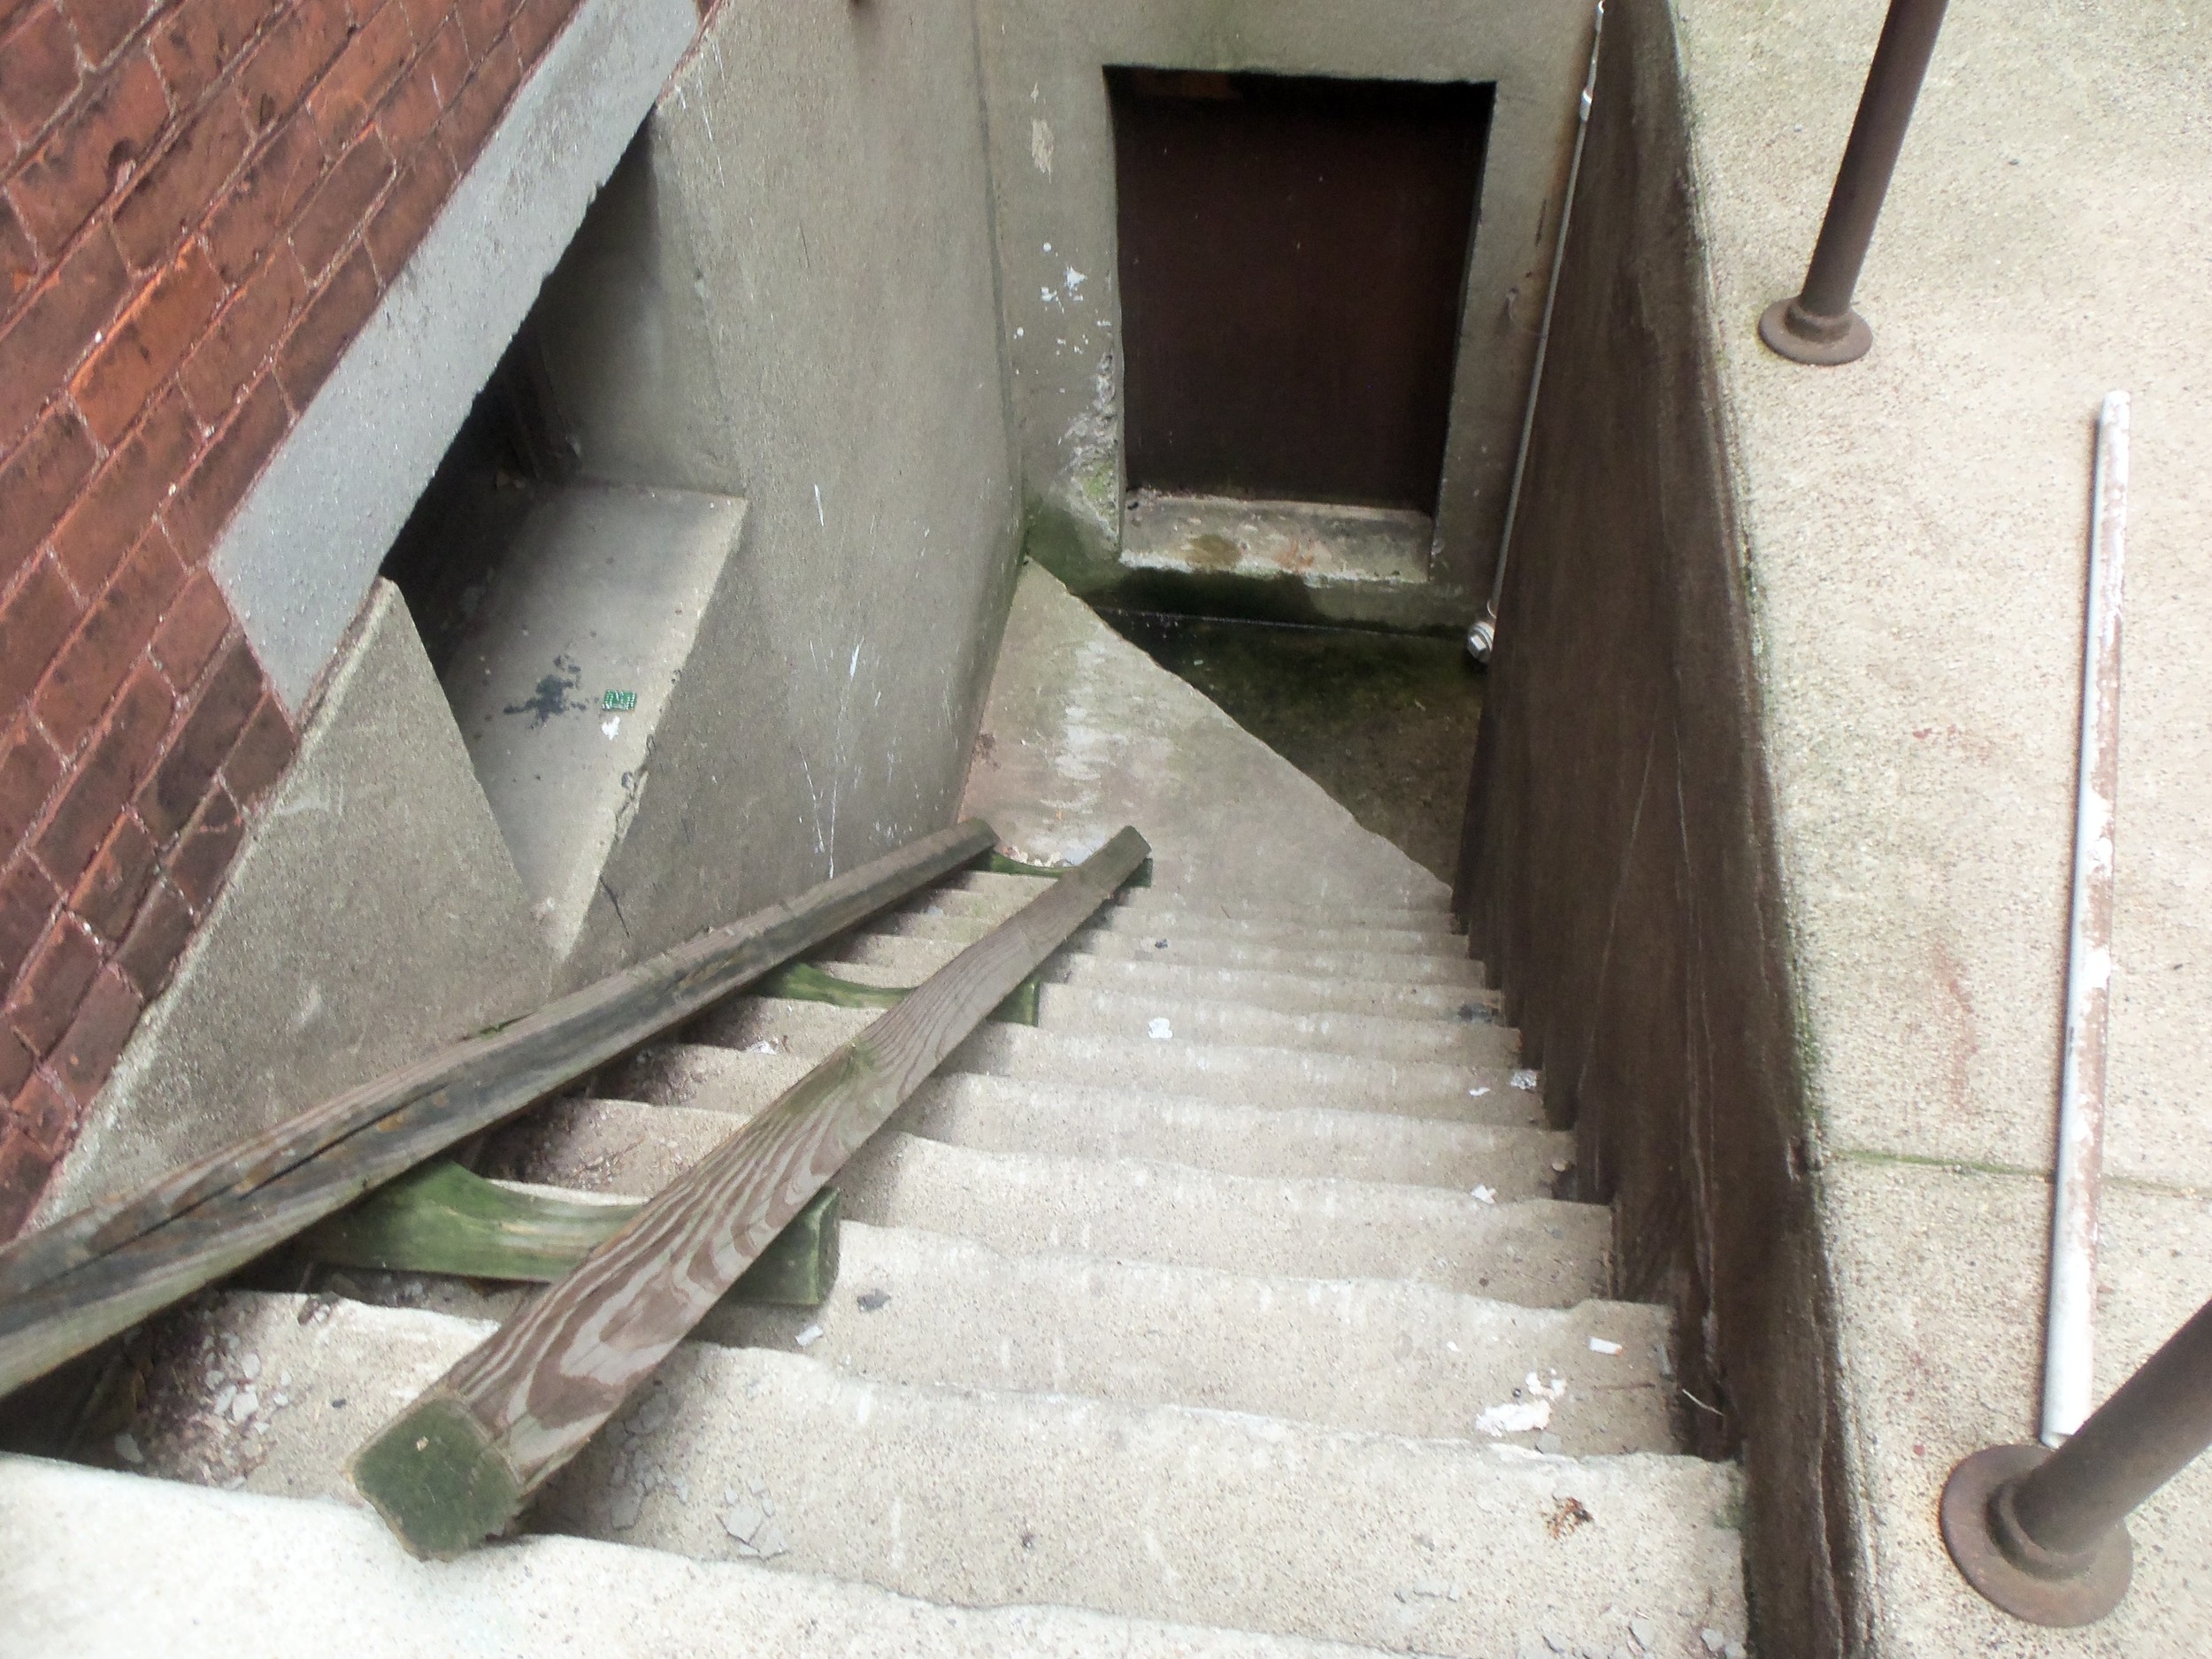 LENOX APARTMENT STEPS TO BASEMENT  PHOTO BY KATHY STORRIE  7-26-2014